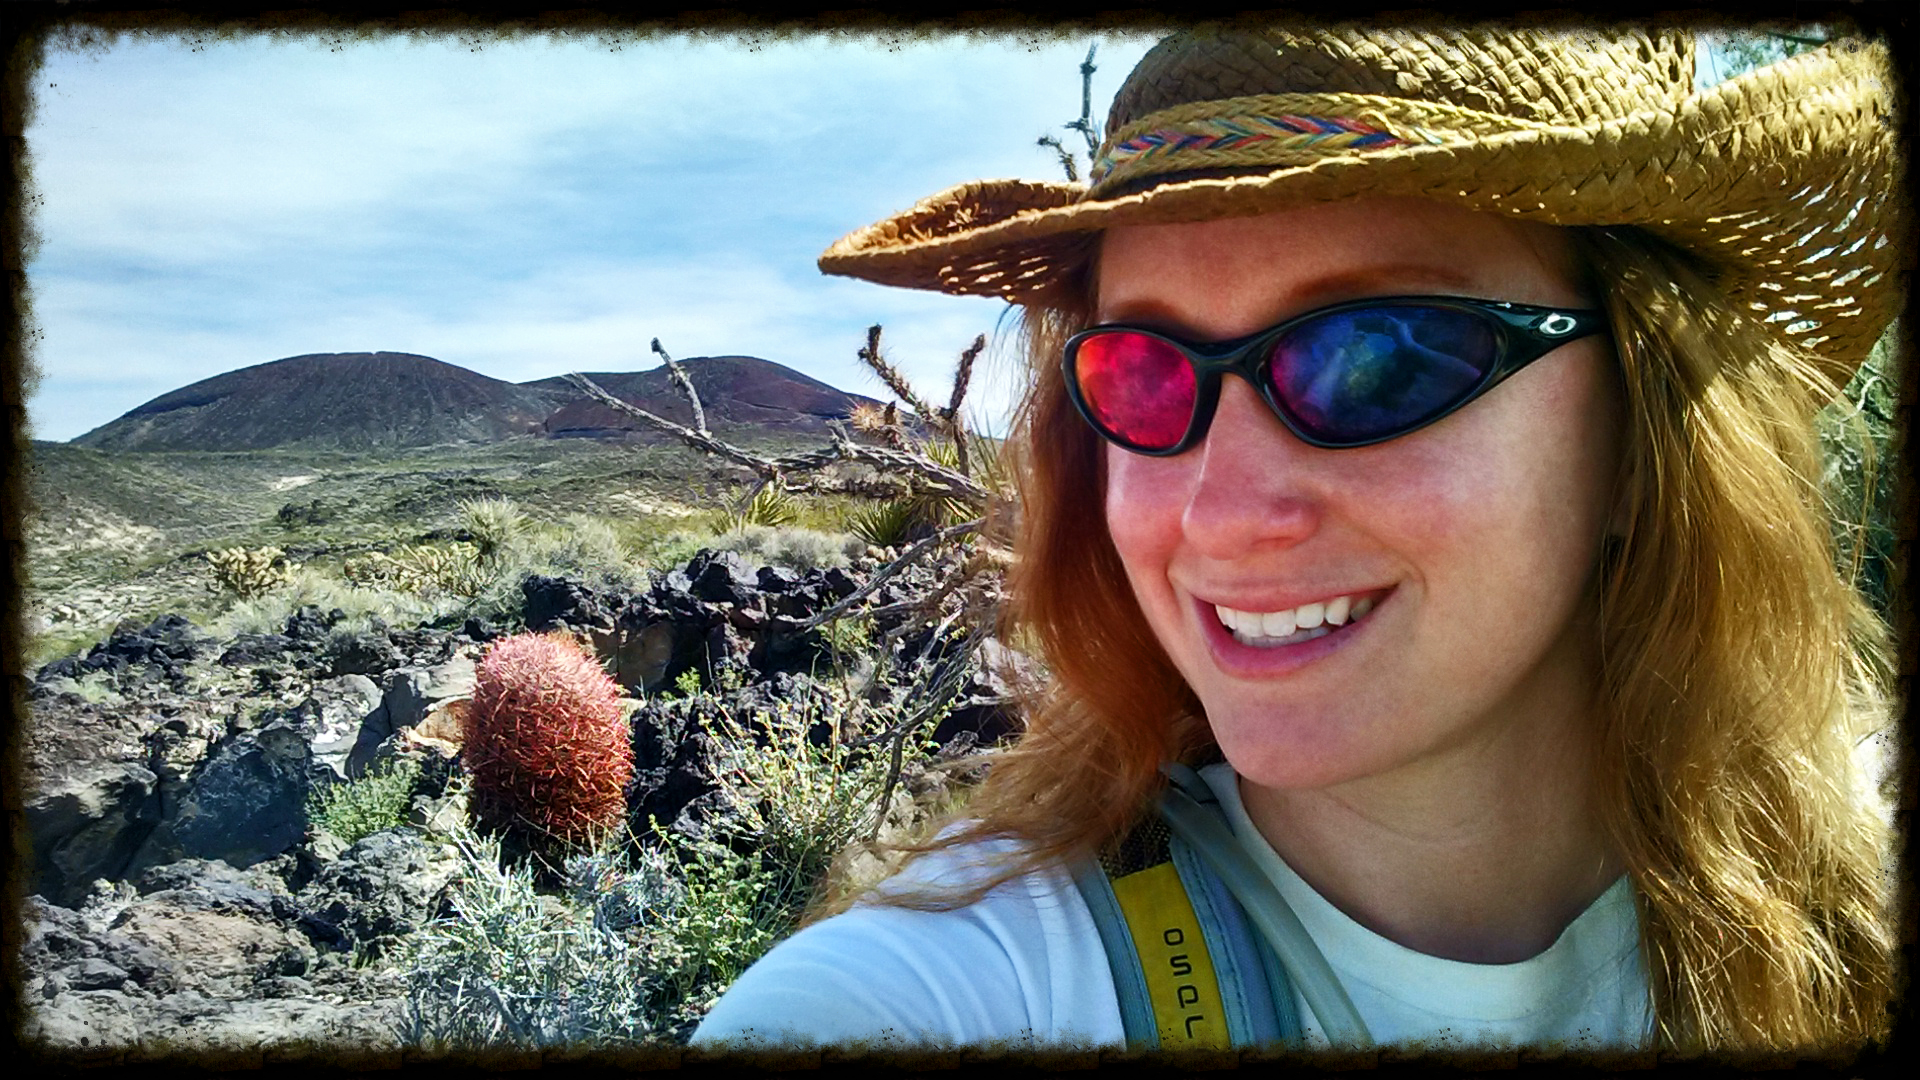 Jess in front of a volcano in California's Mojave Desert. March 2015.